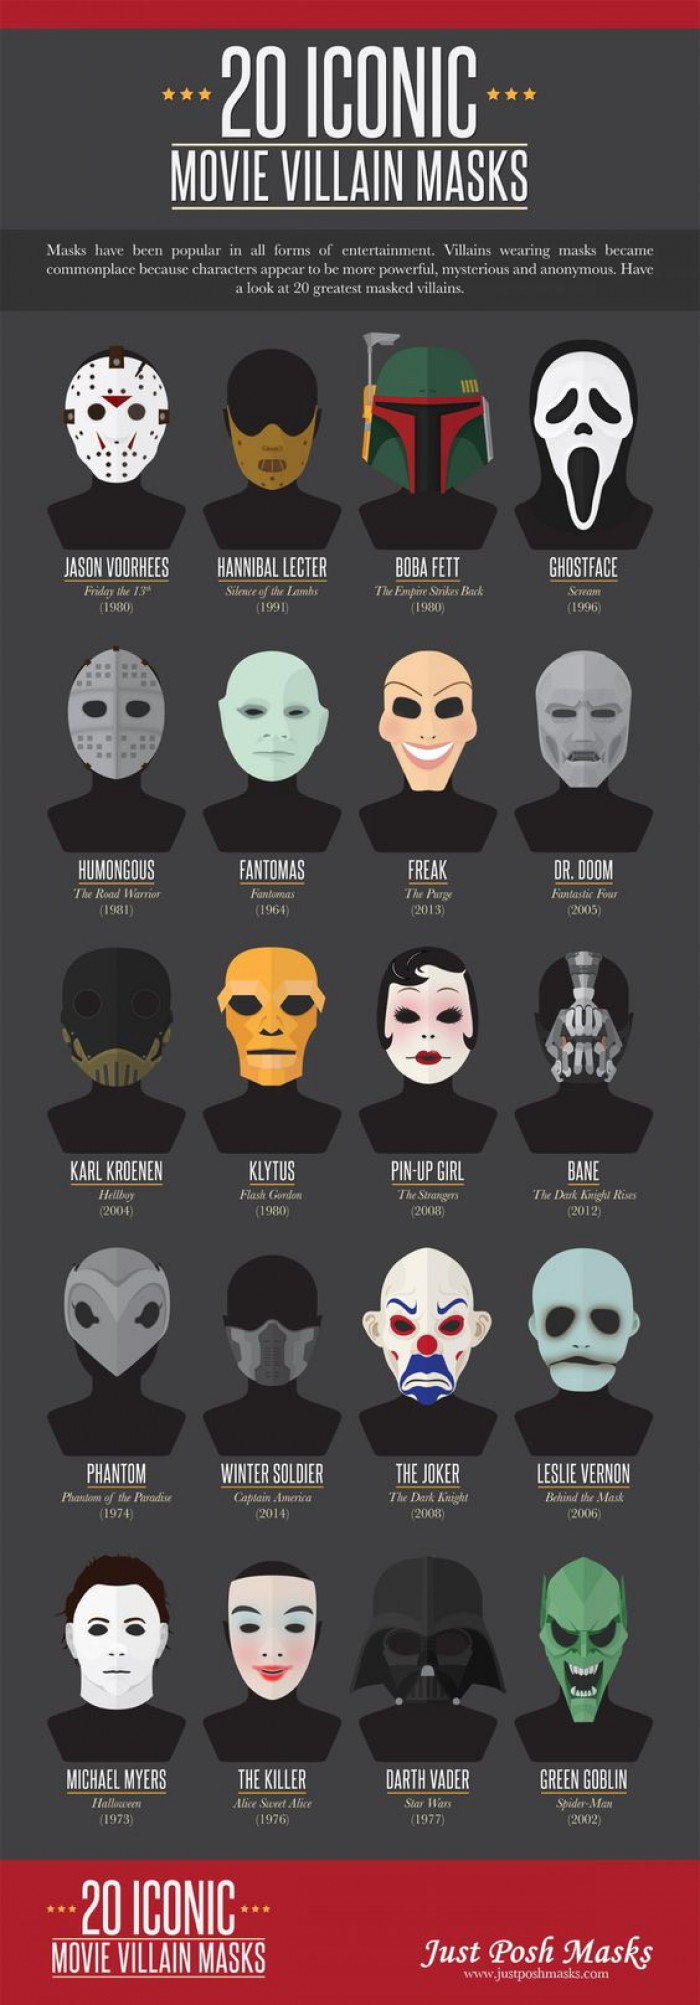 20 Iconic Movie Villain Masks